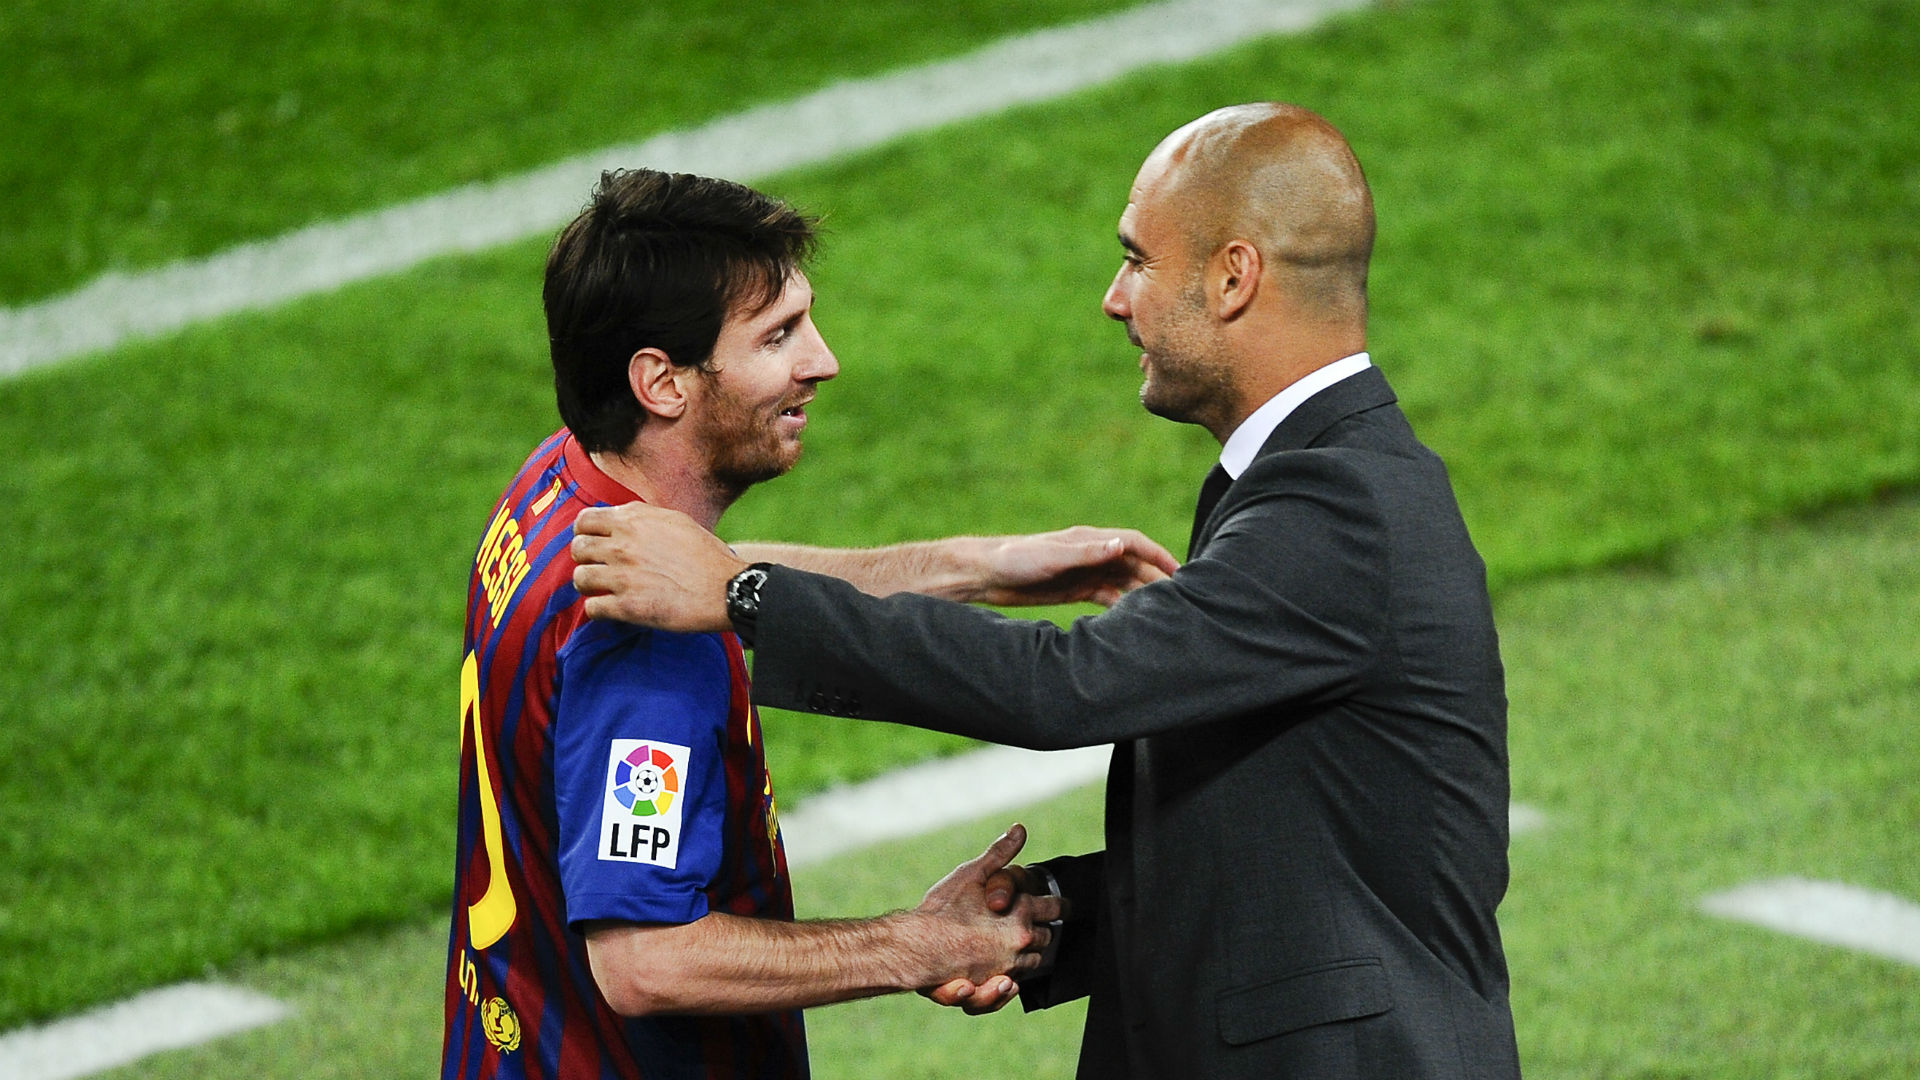 Barcelona will need time when Messi leaves, like Madrid did post-Ronaldo – Guardiola